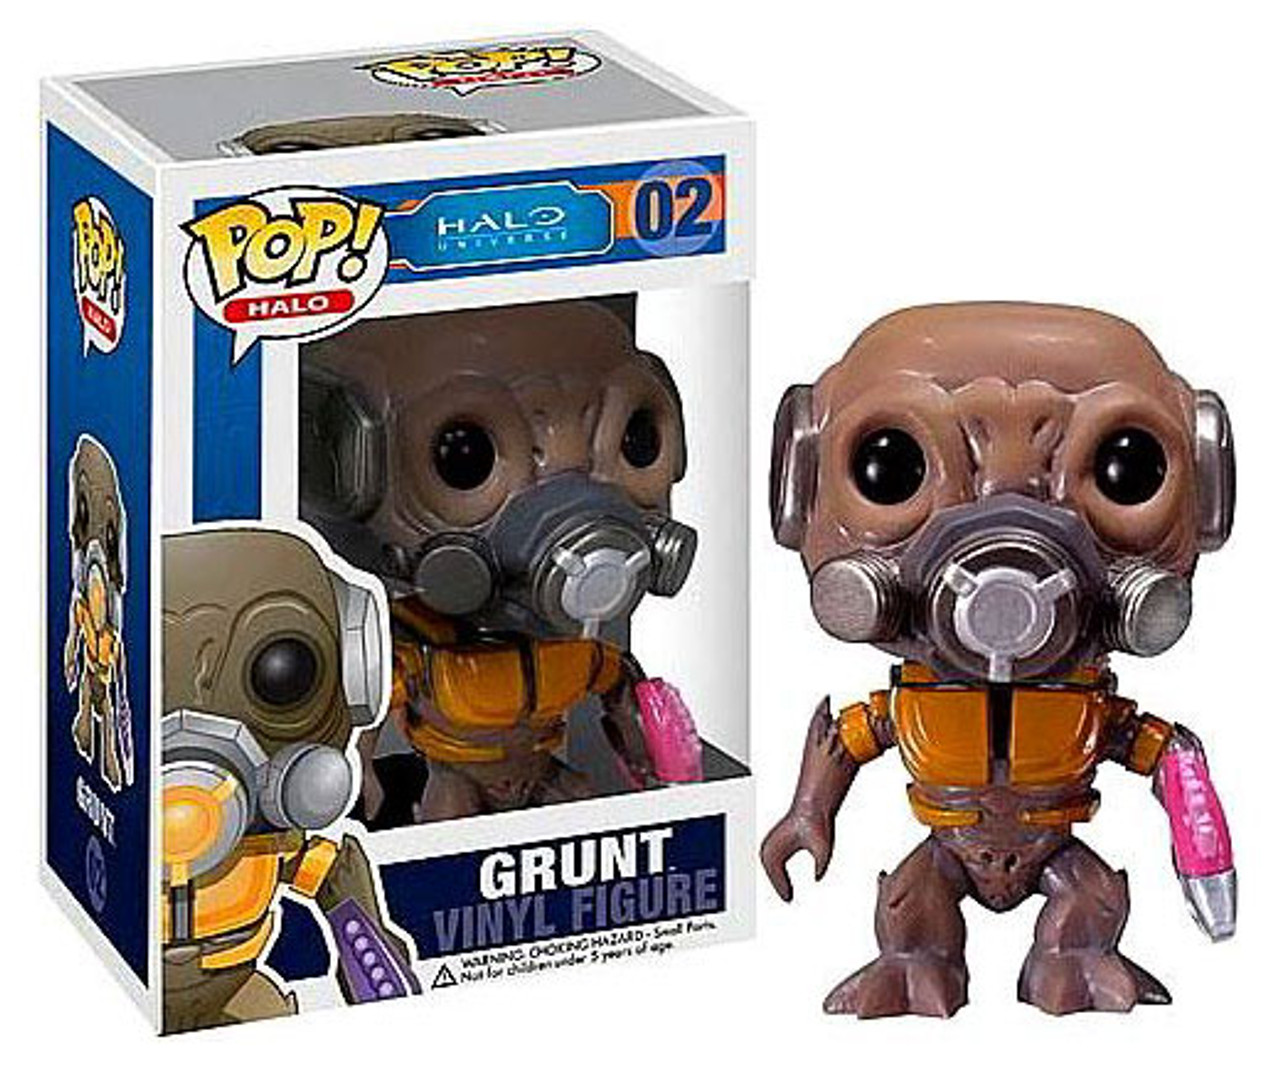 Halo Universe Funko POP! Halo Grunt Minor Vinyl Figure #02